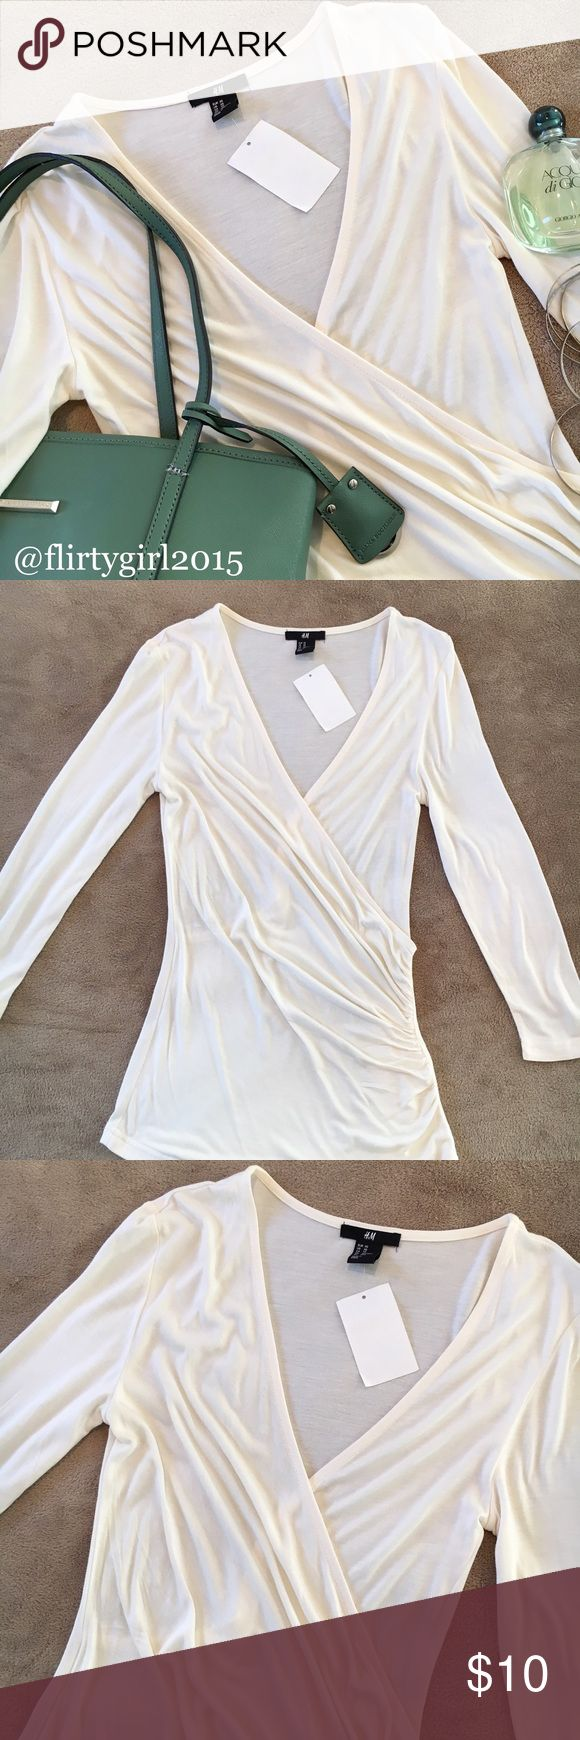 NWT H&M Top 💥NWT!! Surplice top with side ruching and long sleeves. From H&M. Size XS, true to size. Material is light and airy. Super soft. Makeup stain on the INSIDE of the shirt and is not noticeable at all, can upload picture if requested. Versatile white top. Dress it up, dress it down, throw it over a bikini and enjoy a bon fire after spending the day at the beach... endless possibilities. H&M Tops Tees - Long Sleeve